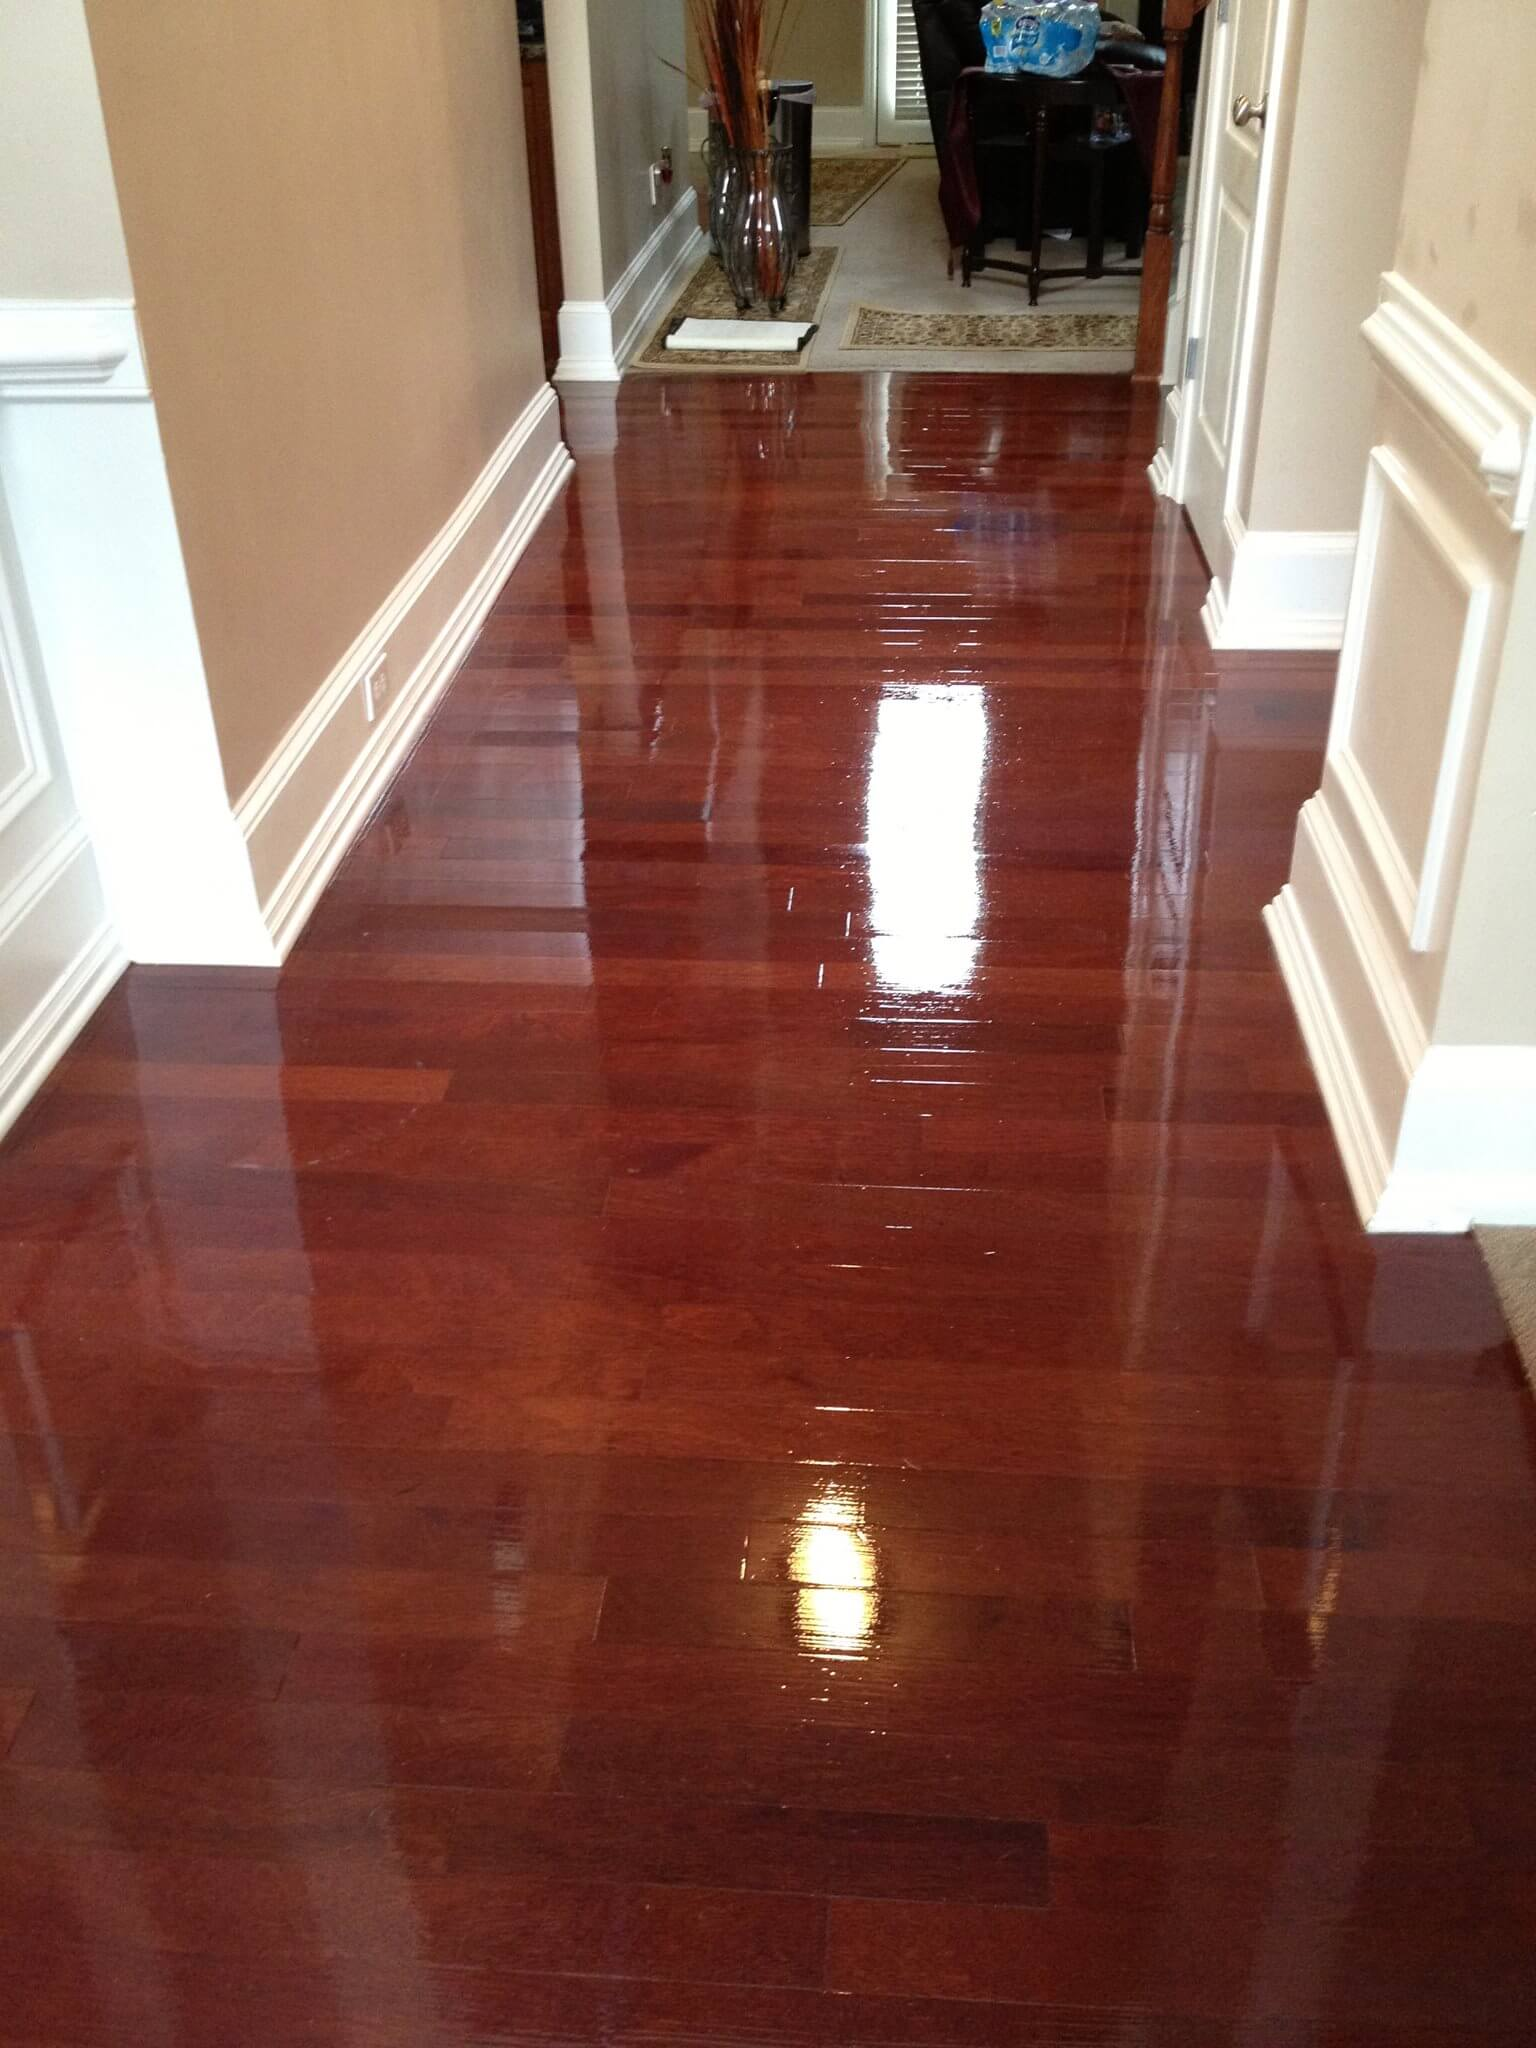 after a hardwood floor refinishing in a newark, nj home